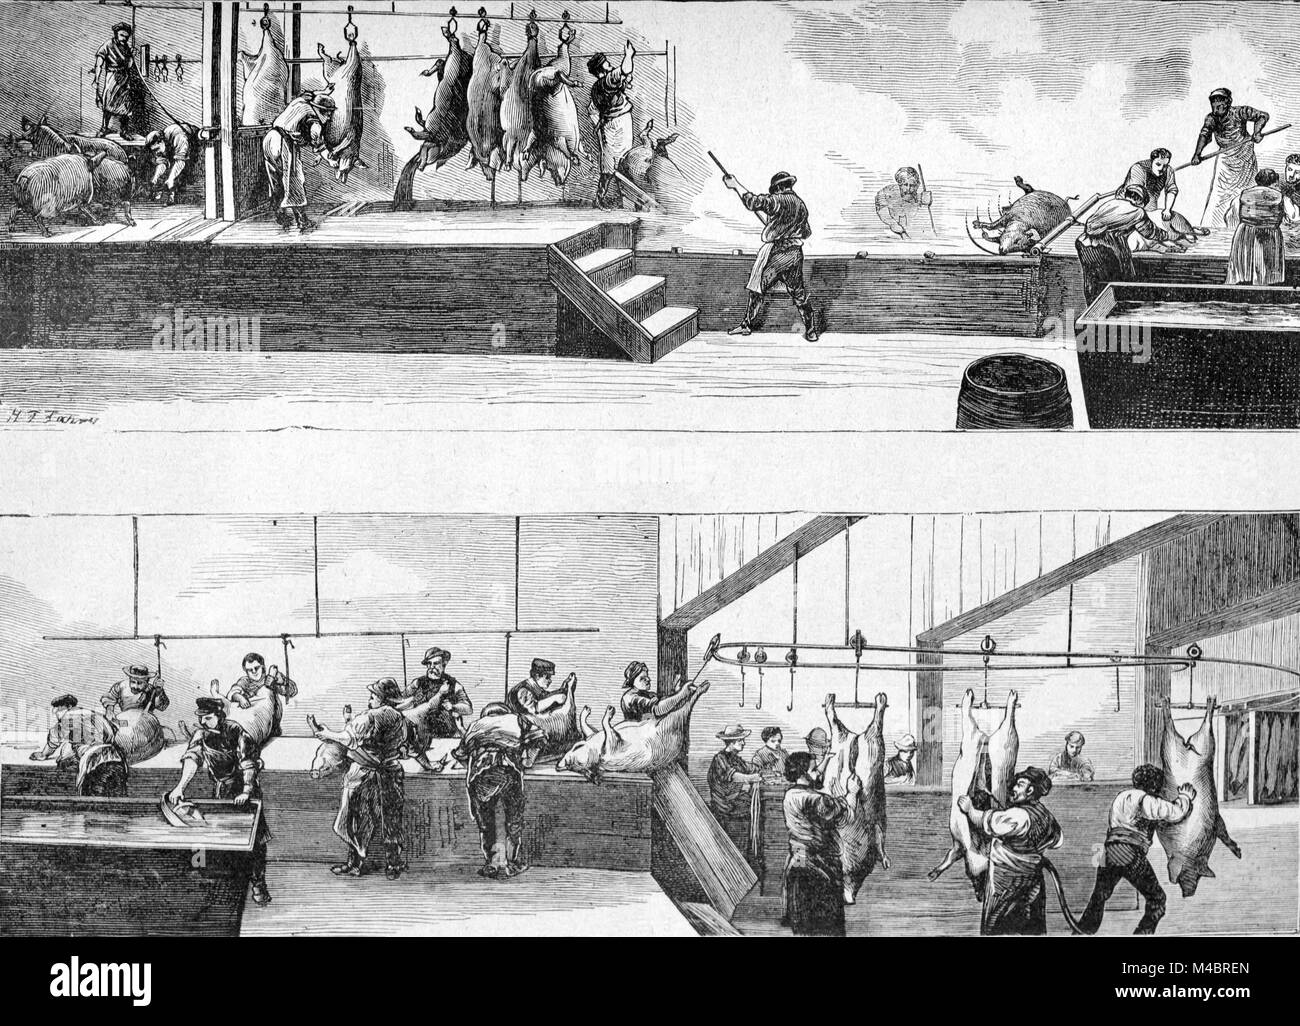 Abattoir or Pig Slaughter House Cincinnati Ohio United States (Engraving, 1880) - Stock Image